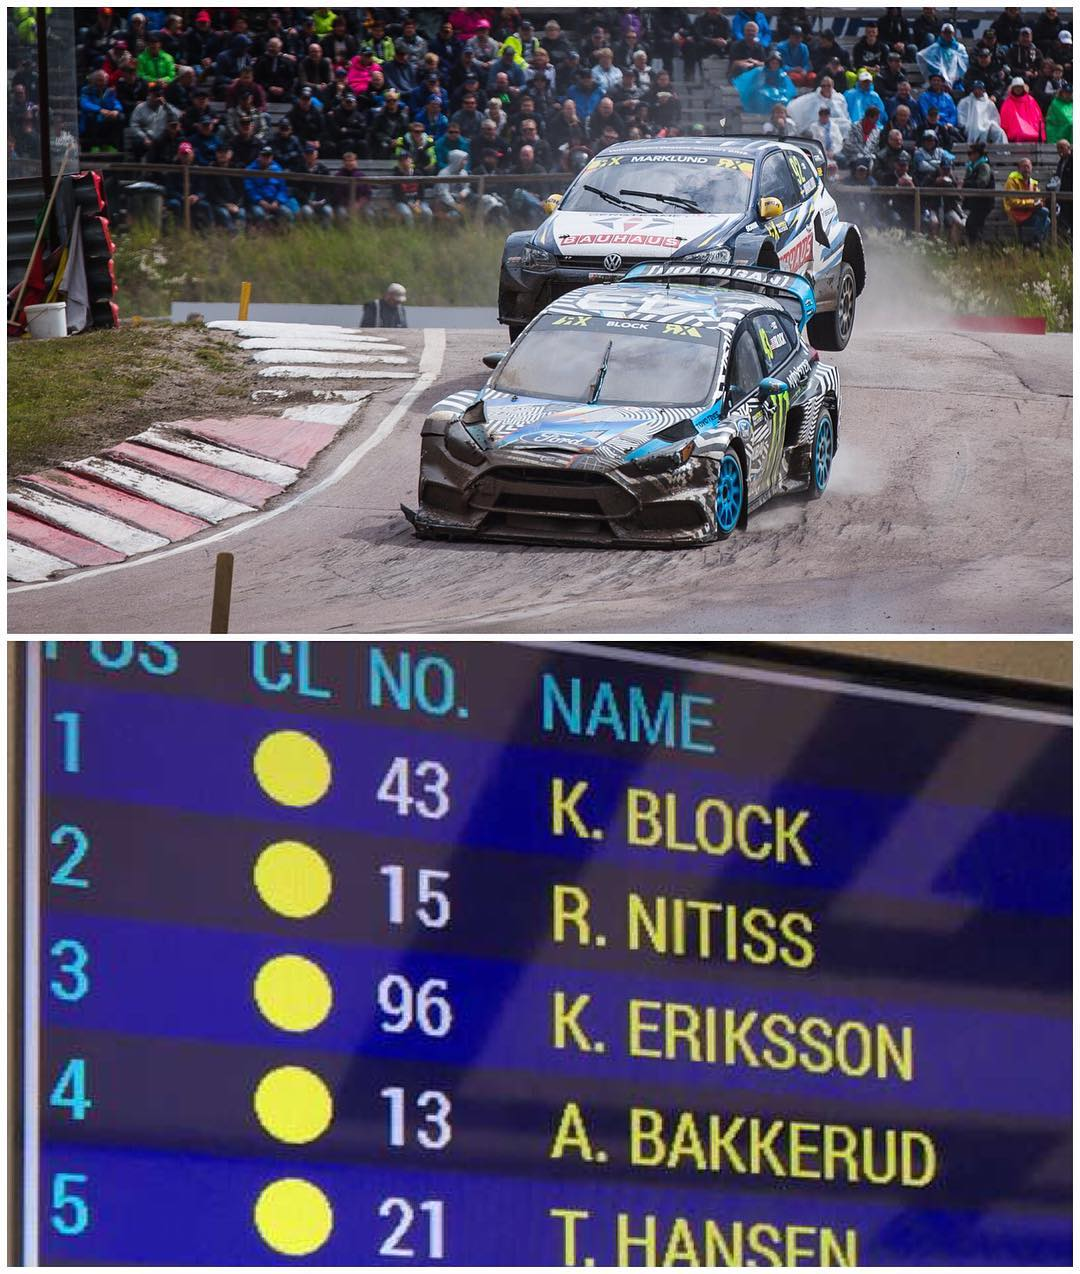 Although I was quick this weekend at a new track (for me), and was fastest in warm-ups this morning, I had a bad day of racing here at #HoljesRX. Lame! Some mechanical issues (one involving being able to see out the windscreen), and bad luck in regards...